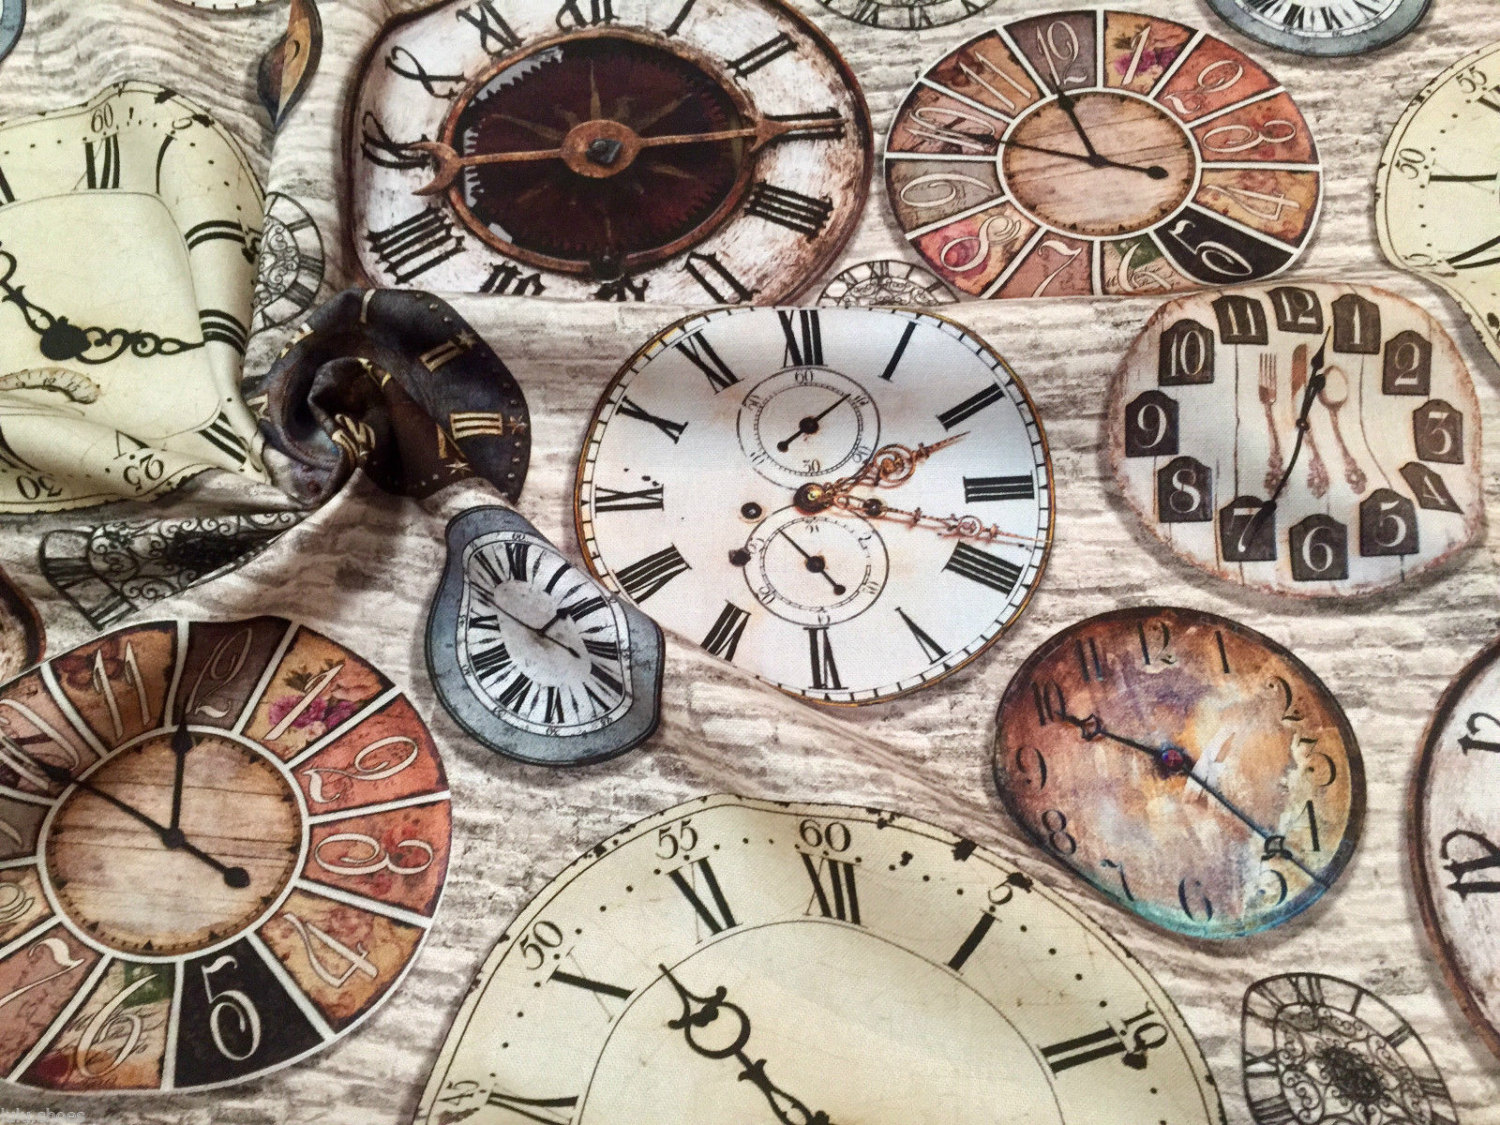 Clock Clockwork Time Watch Face Cotton Fabric Curtain